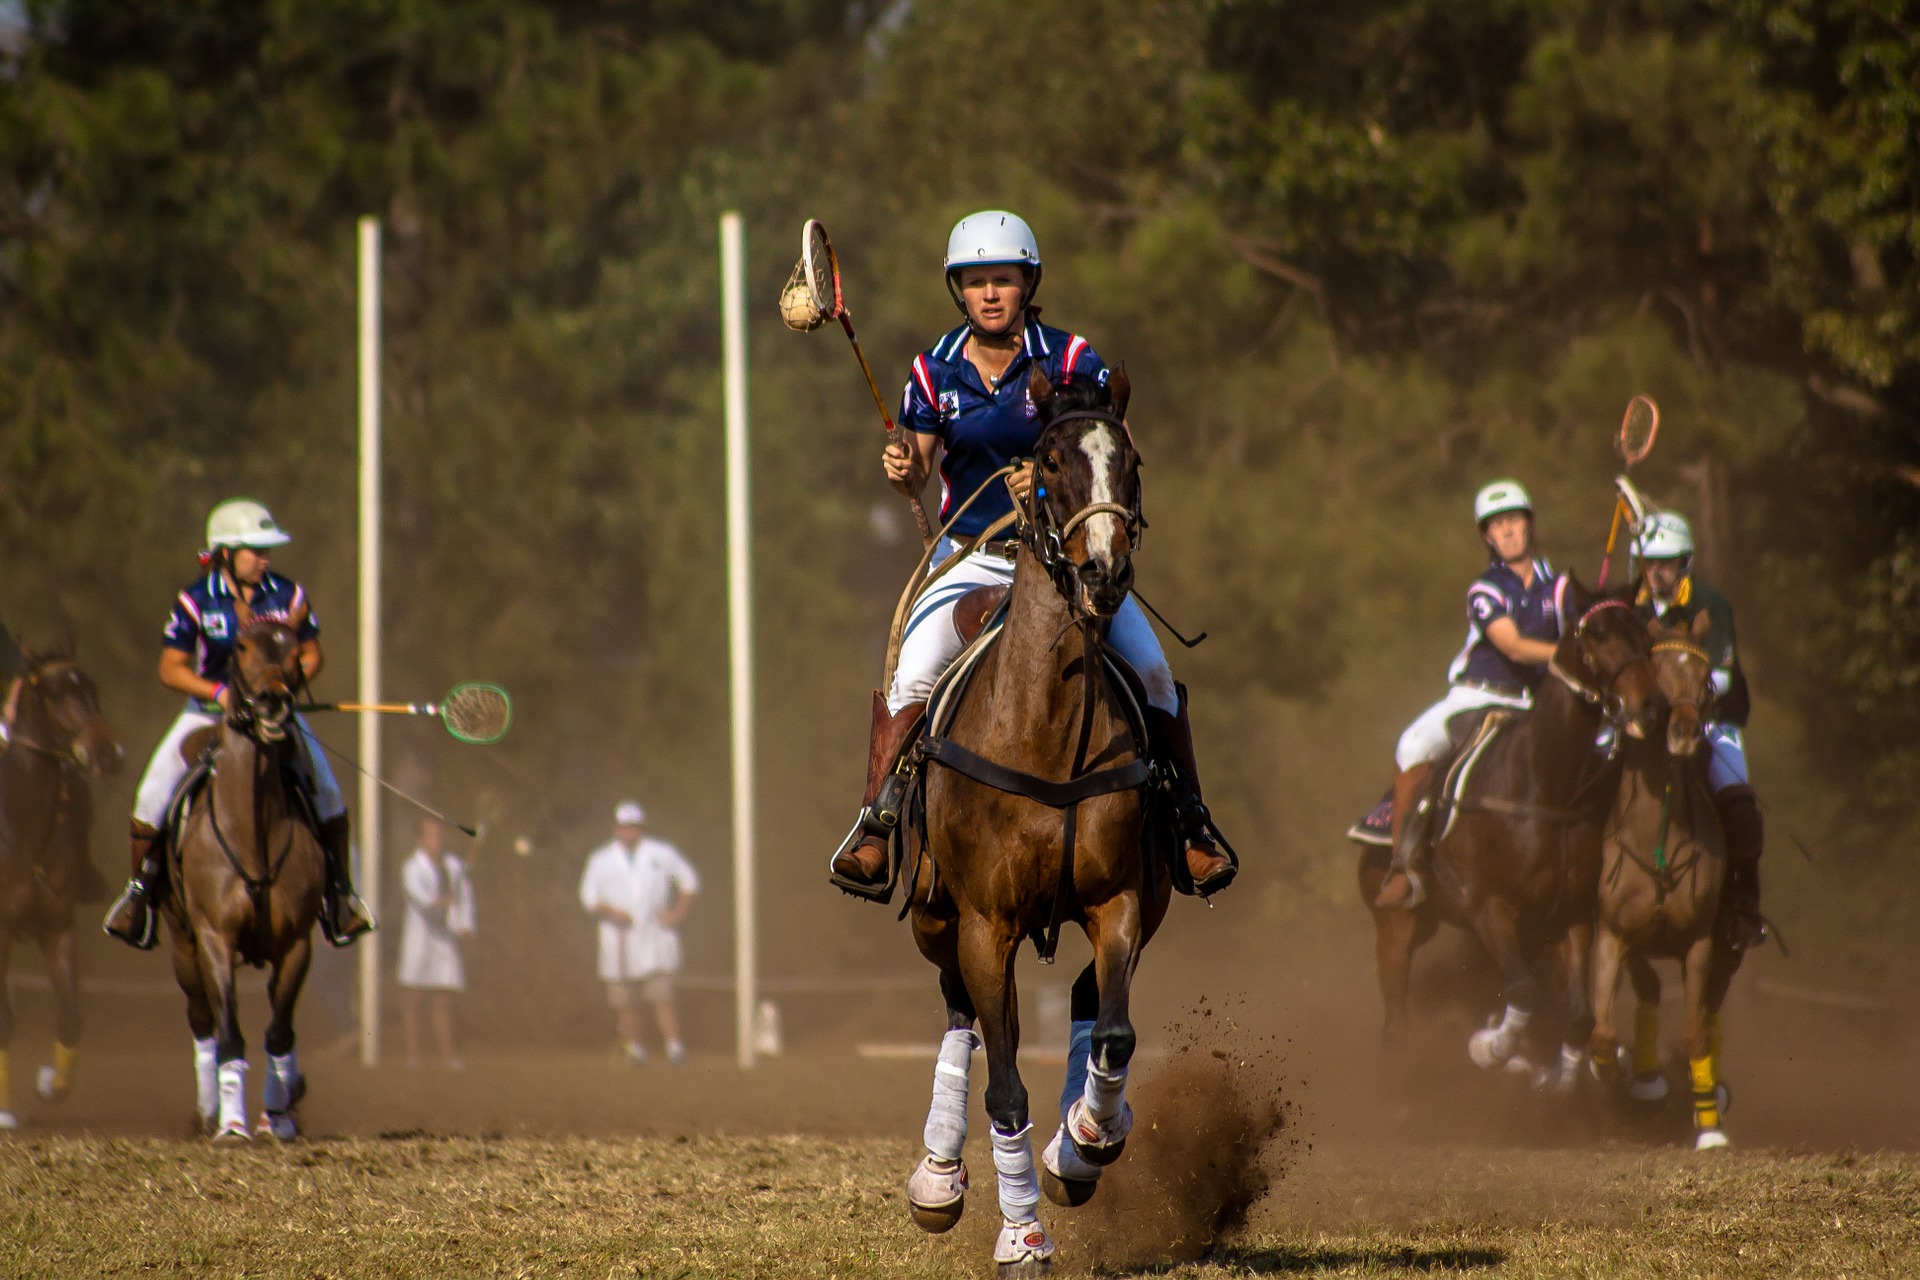 polo, Dubai, sports, competition